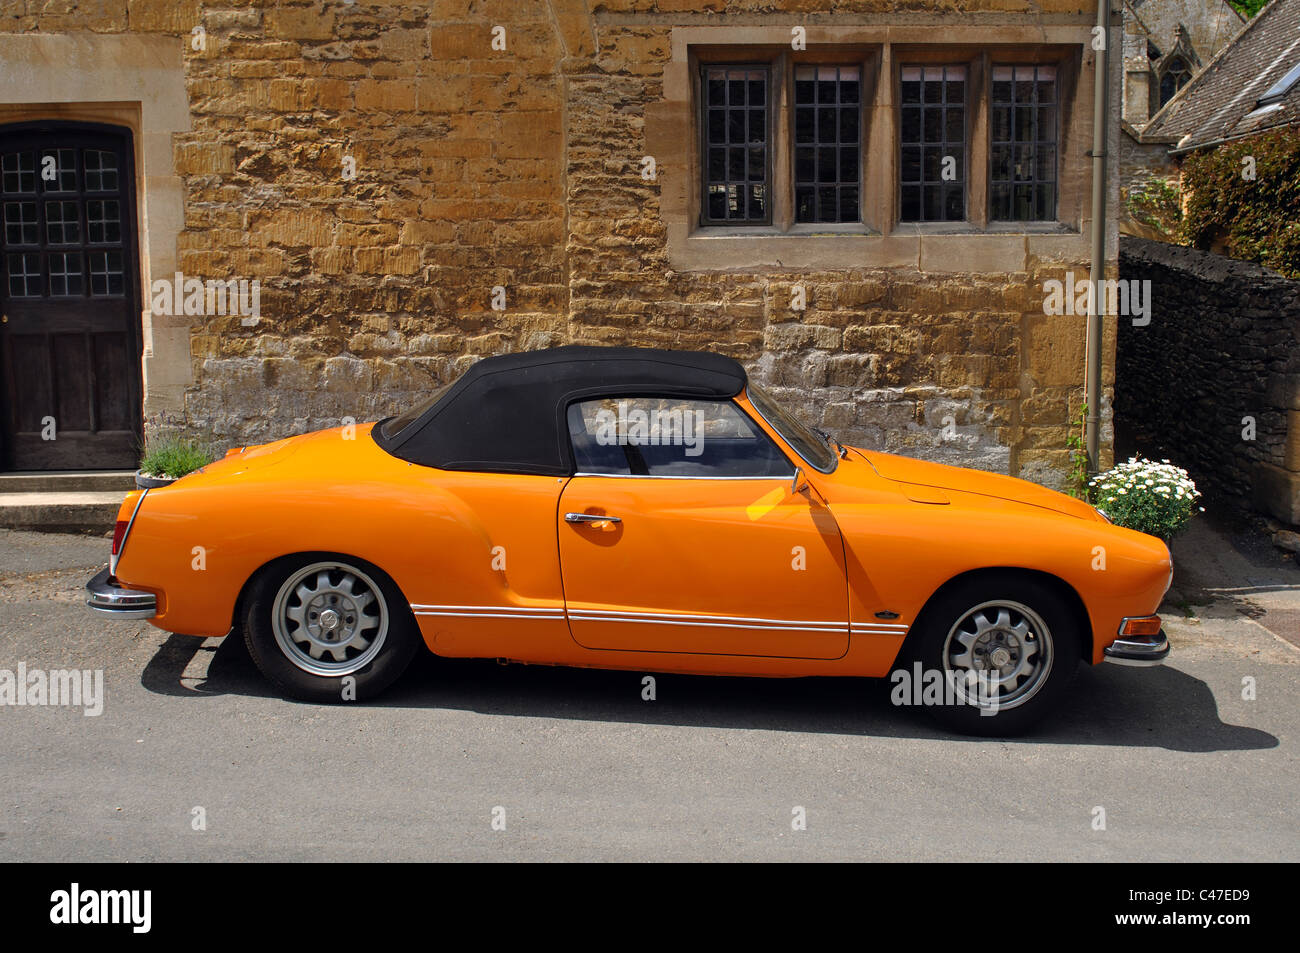 volkswagen karmann ghia cabrio stockfoto bild 37044373 alamy. Black Bedroom Furniture Sets. Home Design Ideas